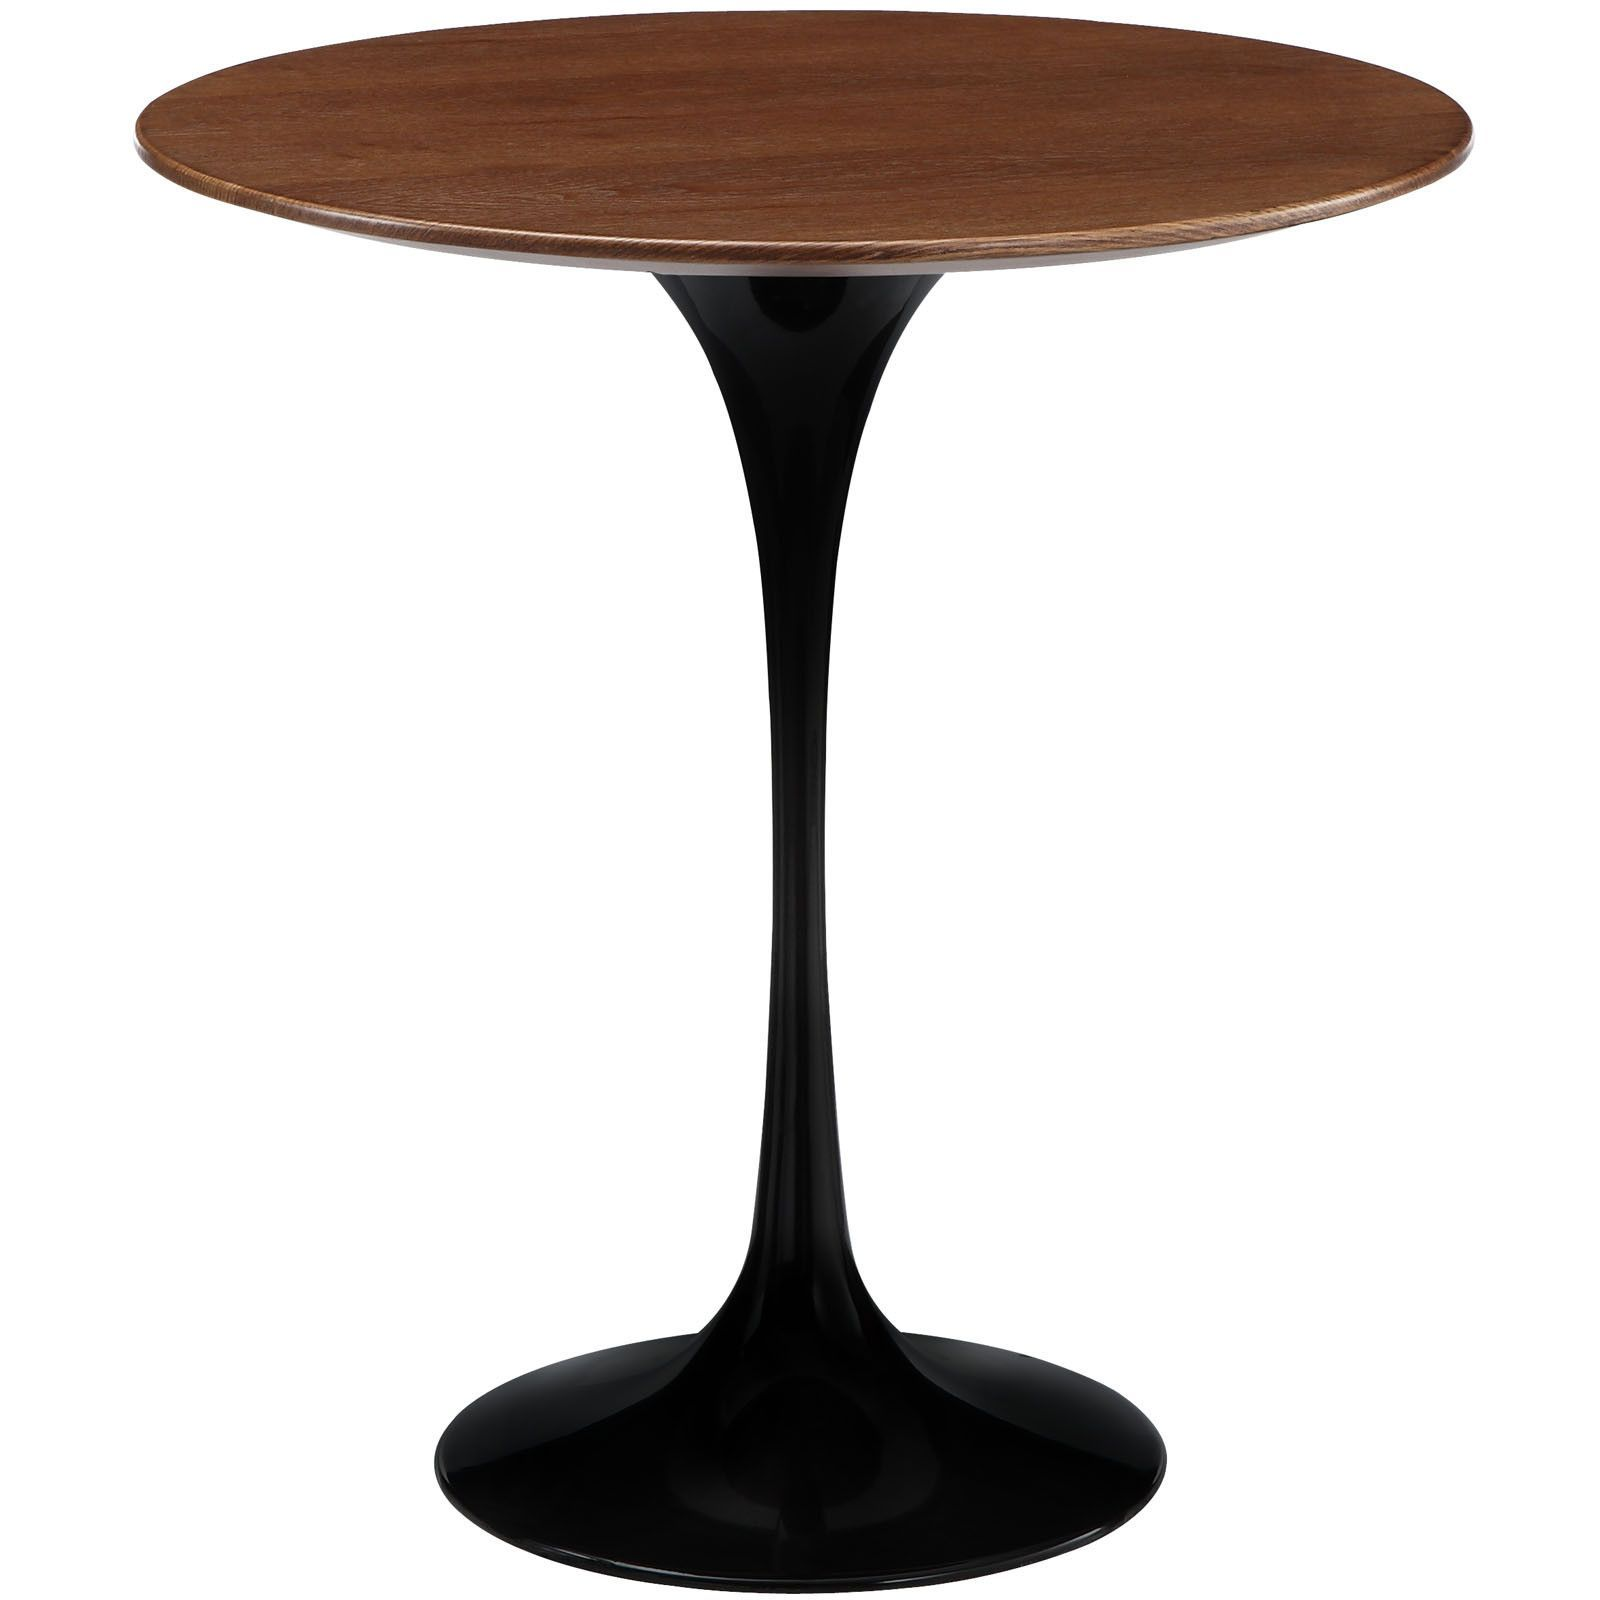 Black side table round - Lippa 20 Side Table Black Walnut Wood Round